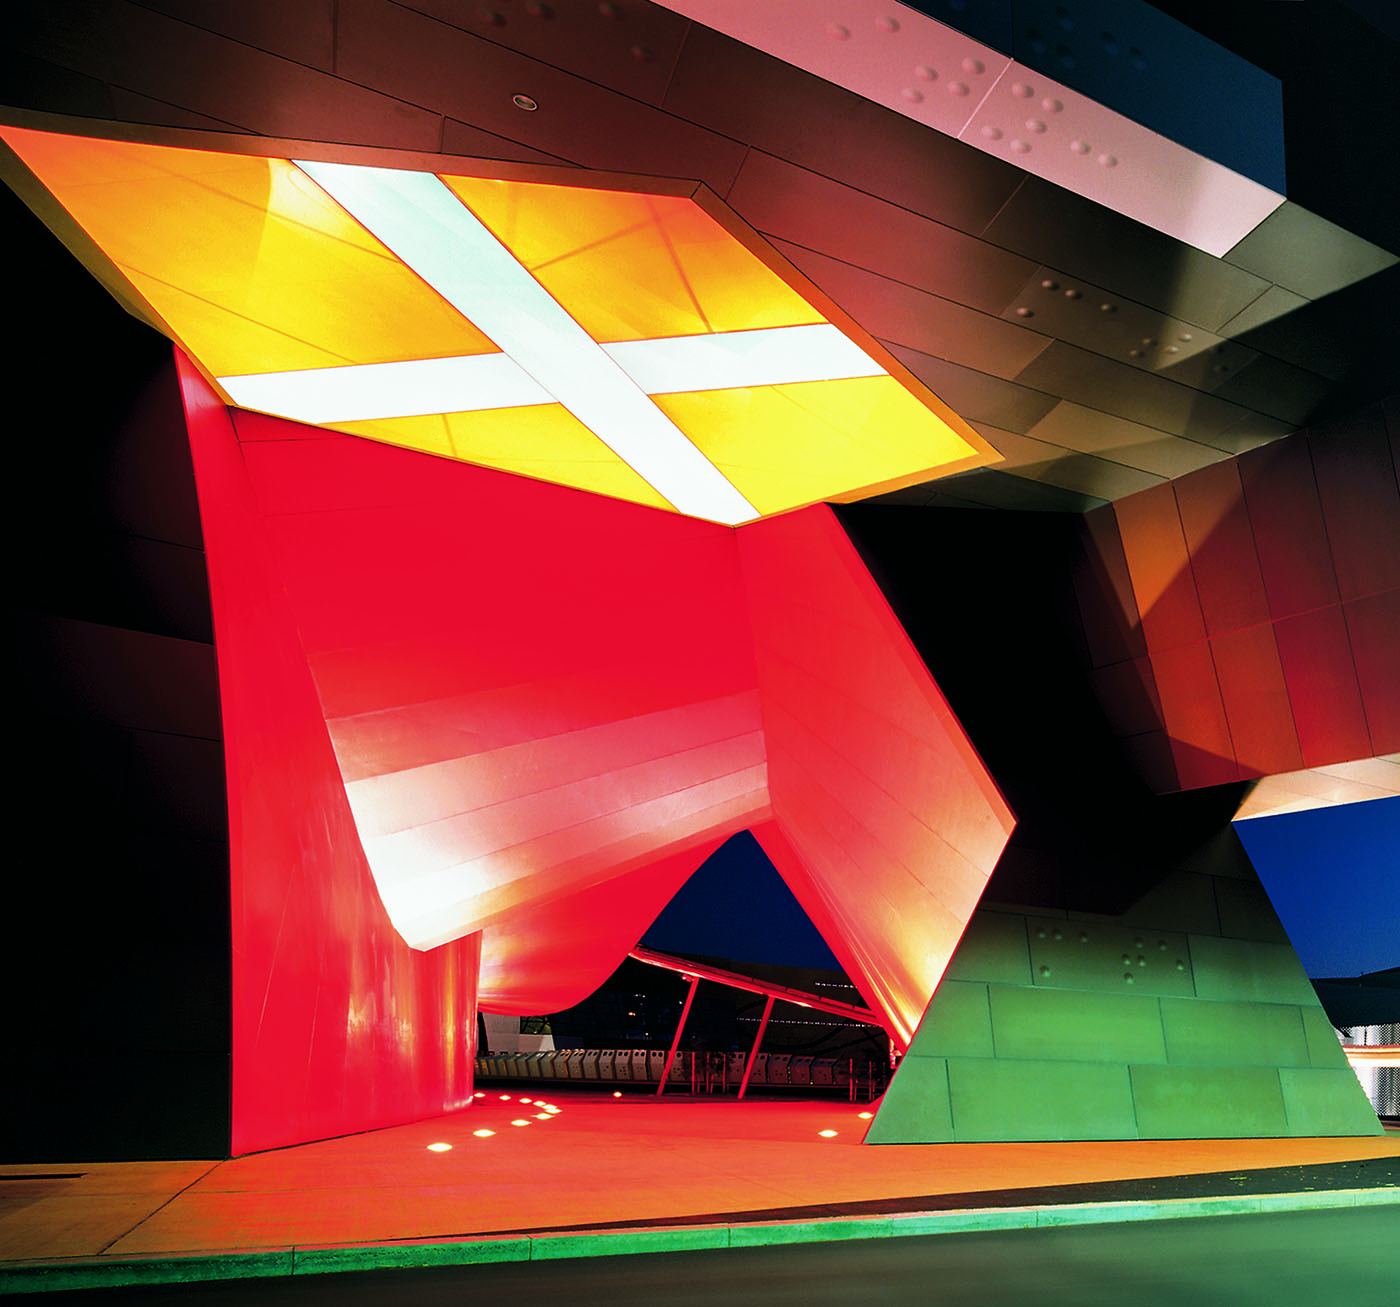 Exterior of a building, illuminated at night. A large, white cross on an orange background rises above a red curved wall.